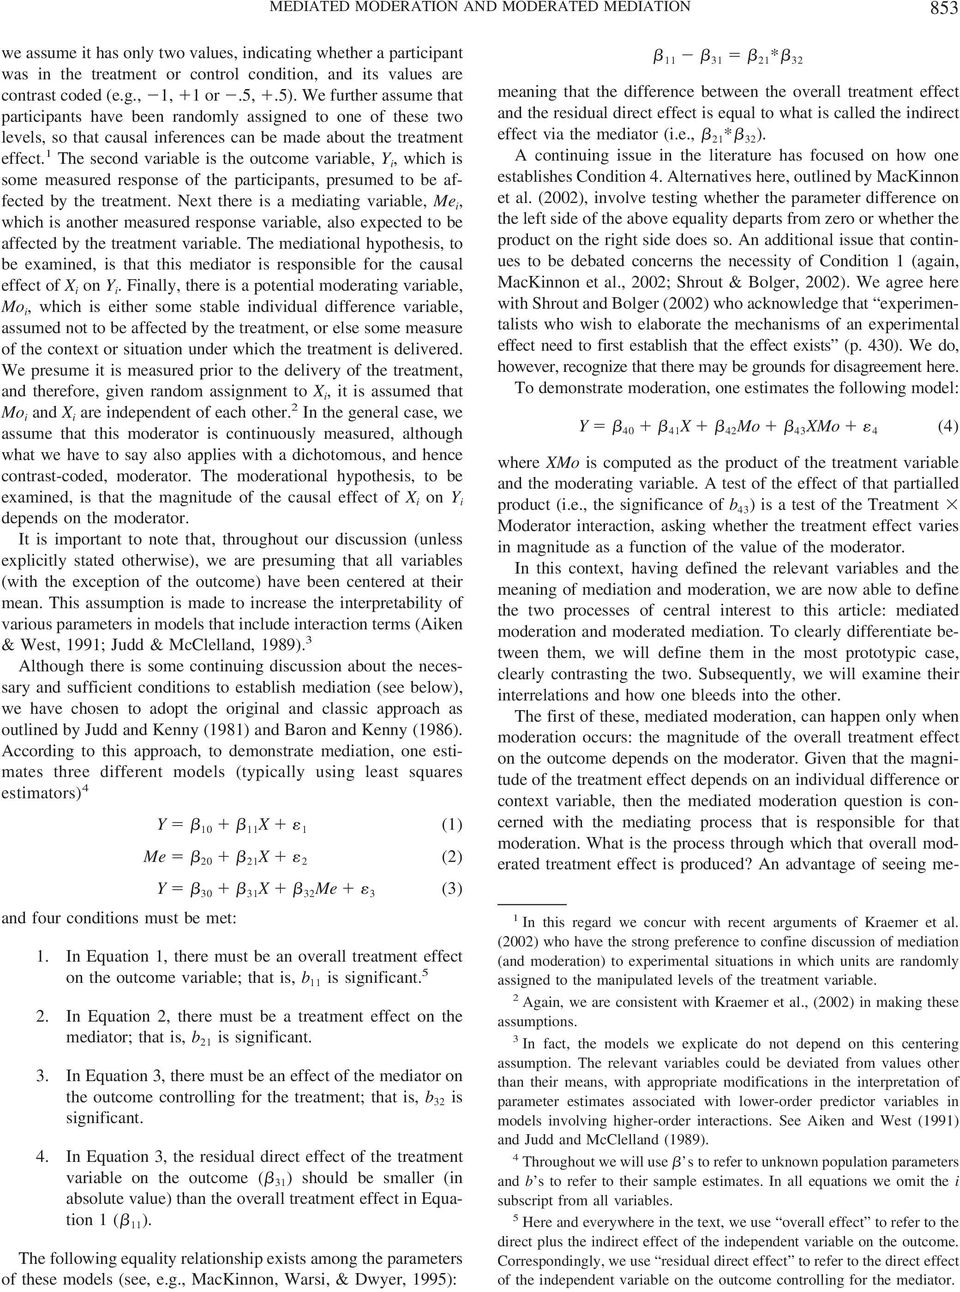 1 The second variable is the outcome variable, Y i, which is some measured response of the participants, presumed to be affected by the treatment.